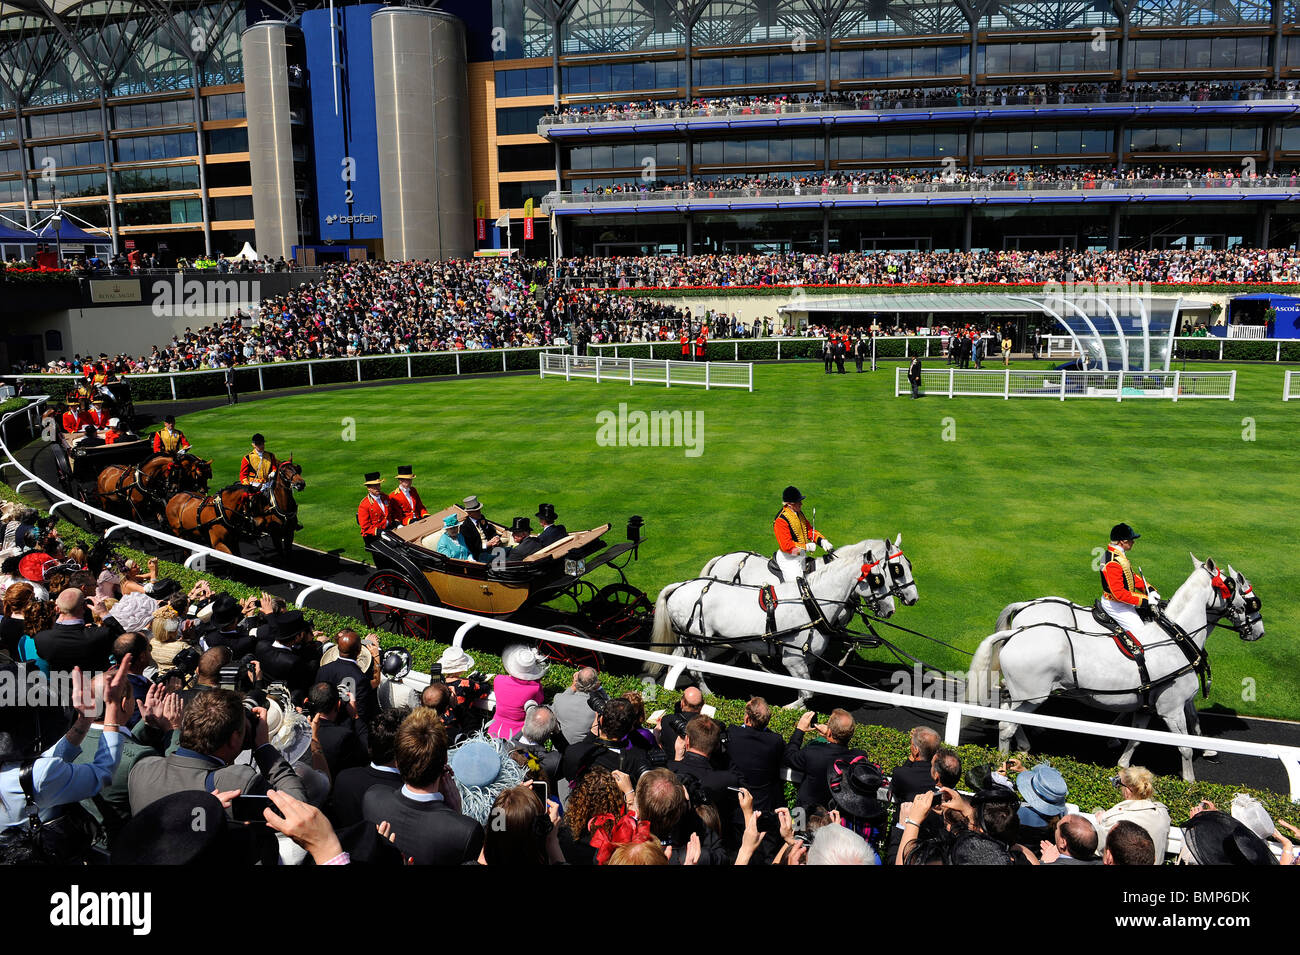 View of the royal procession in the parade ring during day one of Royal Ascot 2010 - Stock Image